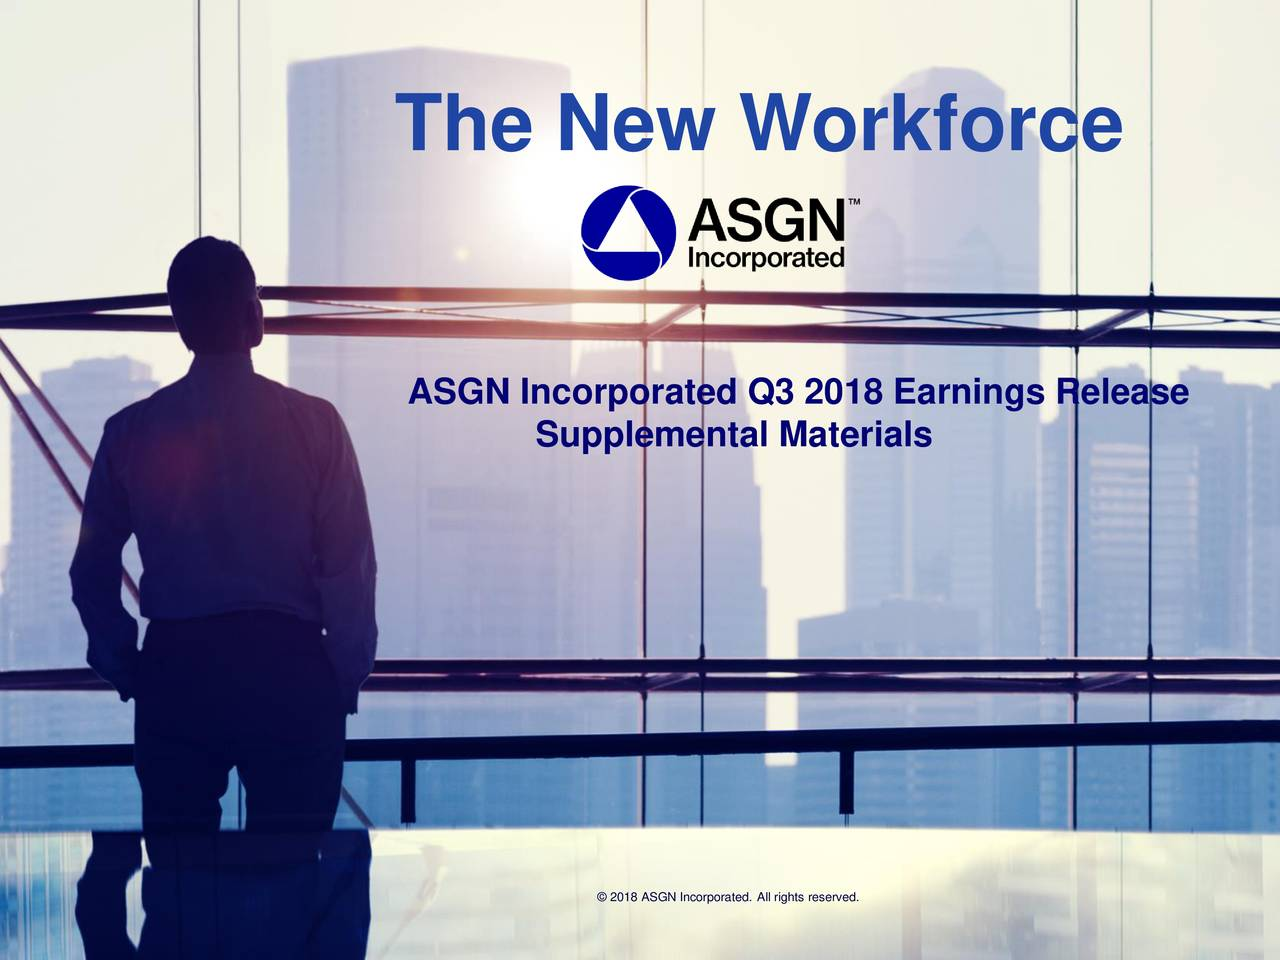 ASGN Incorporated Q3 2018 Earnings Release Supplemental Materials © 2018 ASGN Incorpor0ted. All rights reserved. © 2018 ASGN Incorporated. All rights reserved.